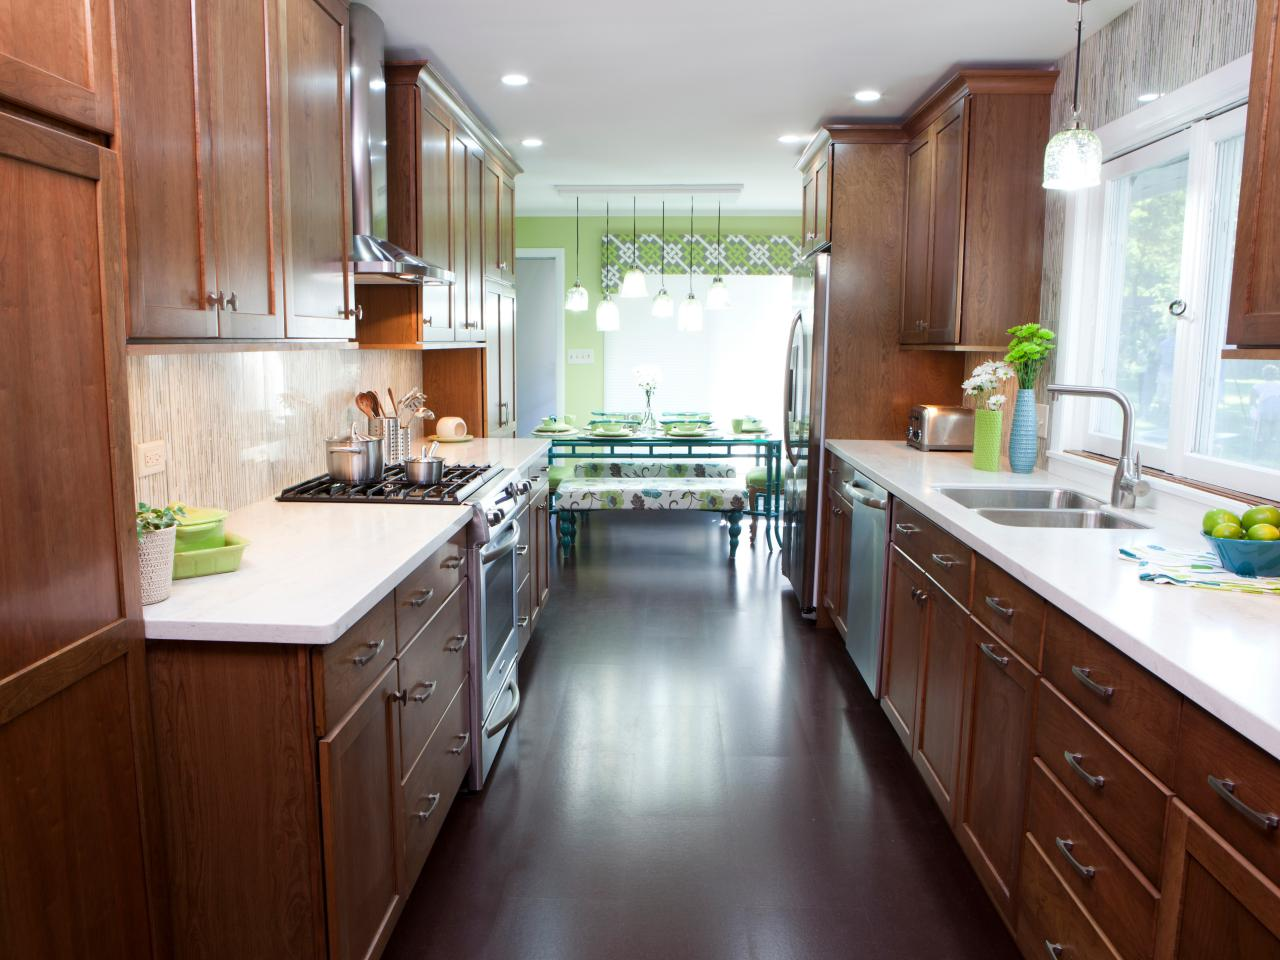 superior Designs For Galley Kitchens #2: Galley Kitchen Designs